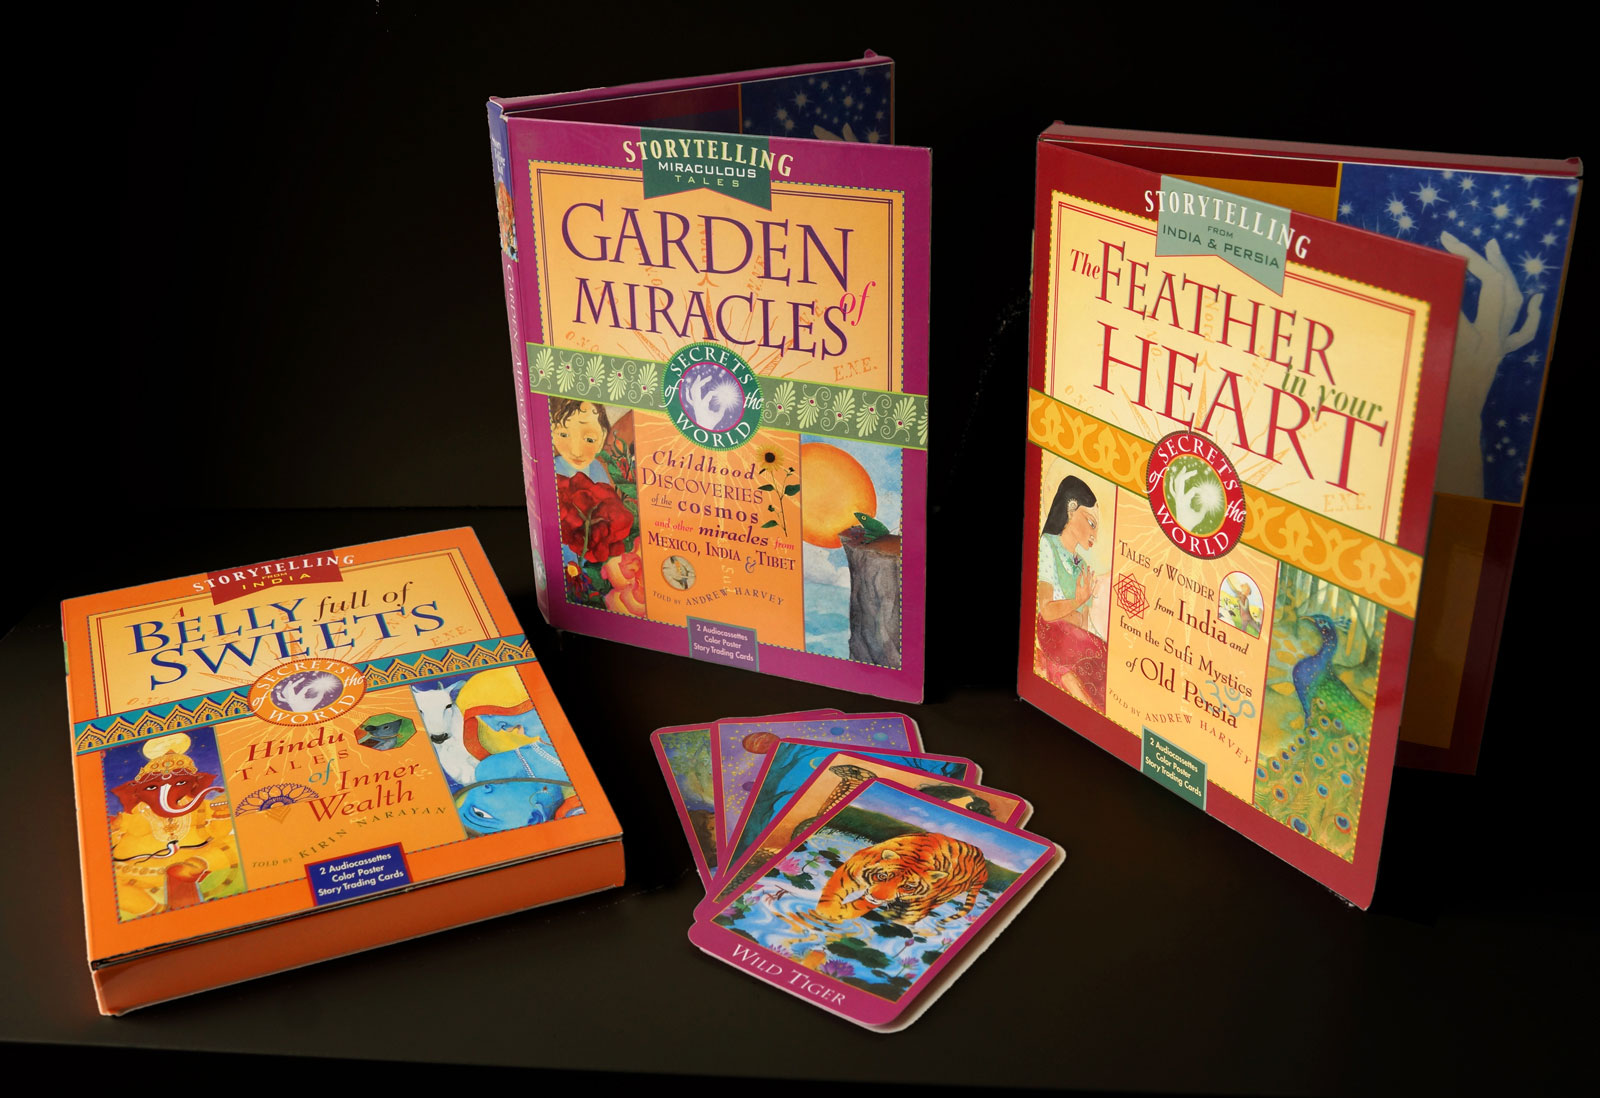 Each package contained a poster with a map showing the provenance of the story, a series of playing cards displaying the various characters, and the audio recording